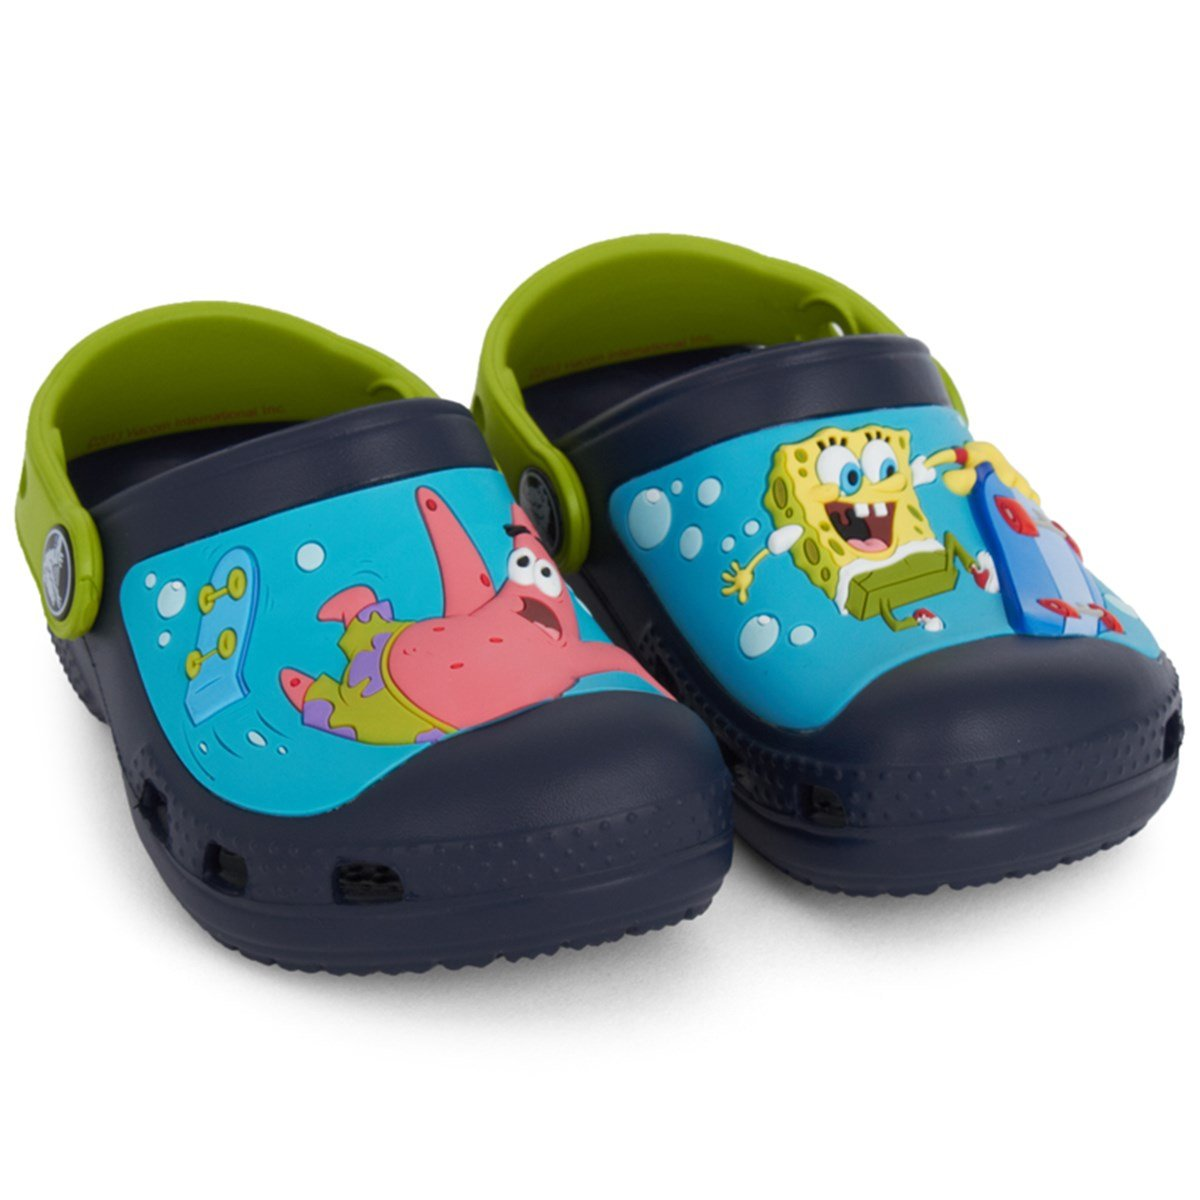 4c766a42120e Crocs Kids SpongeBob SquarePants Crocs